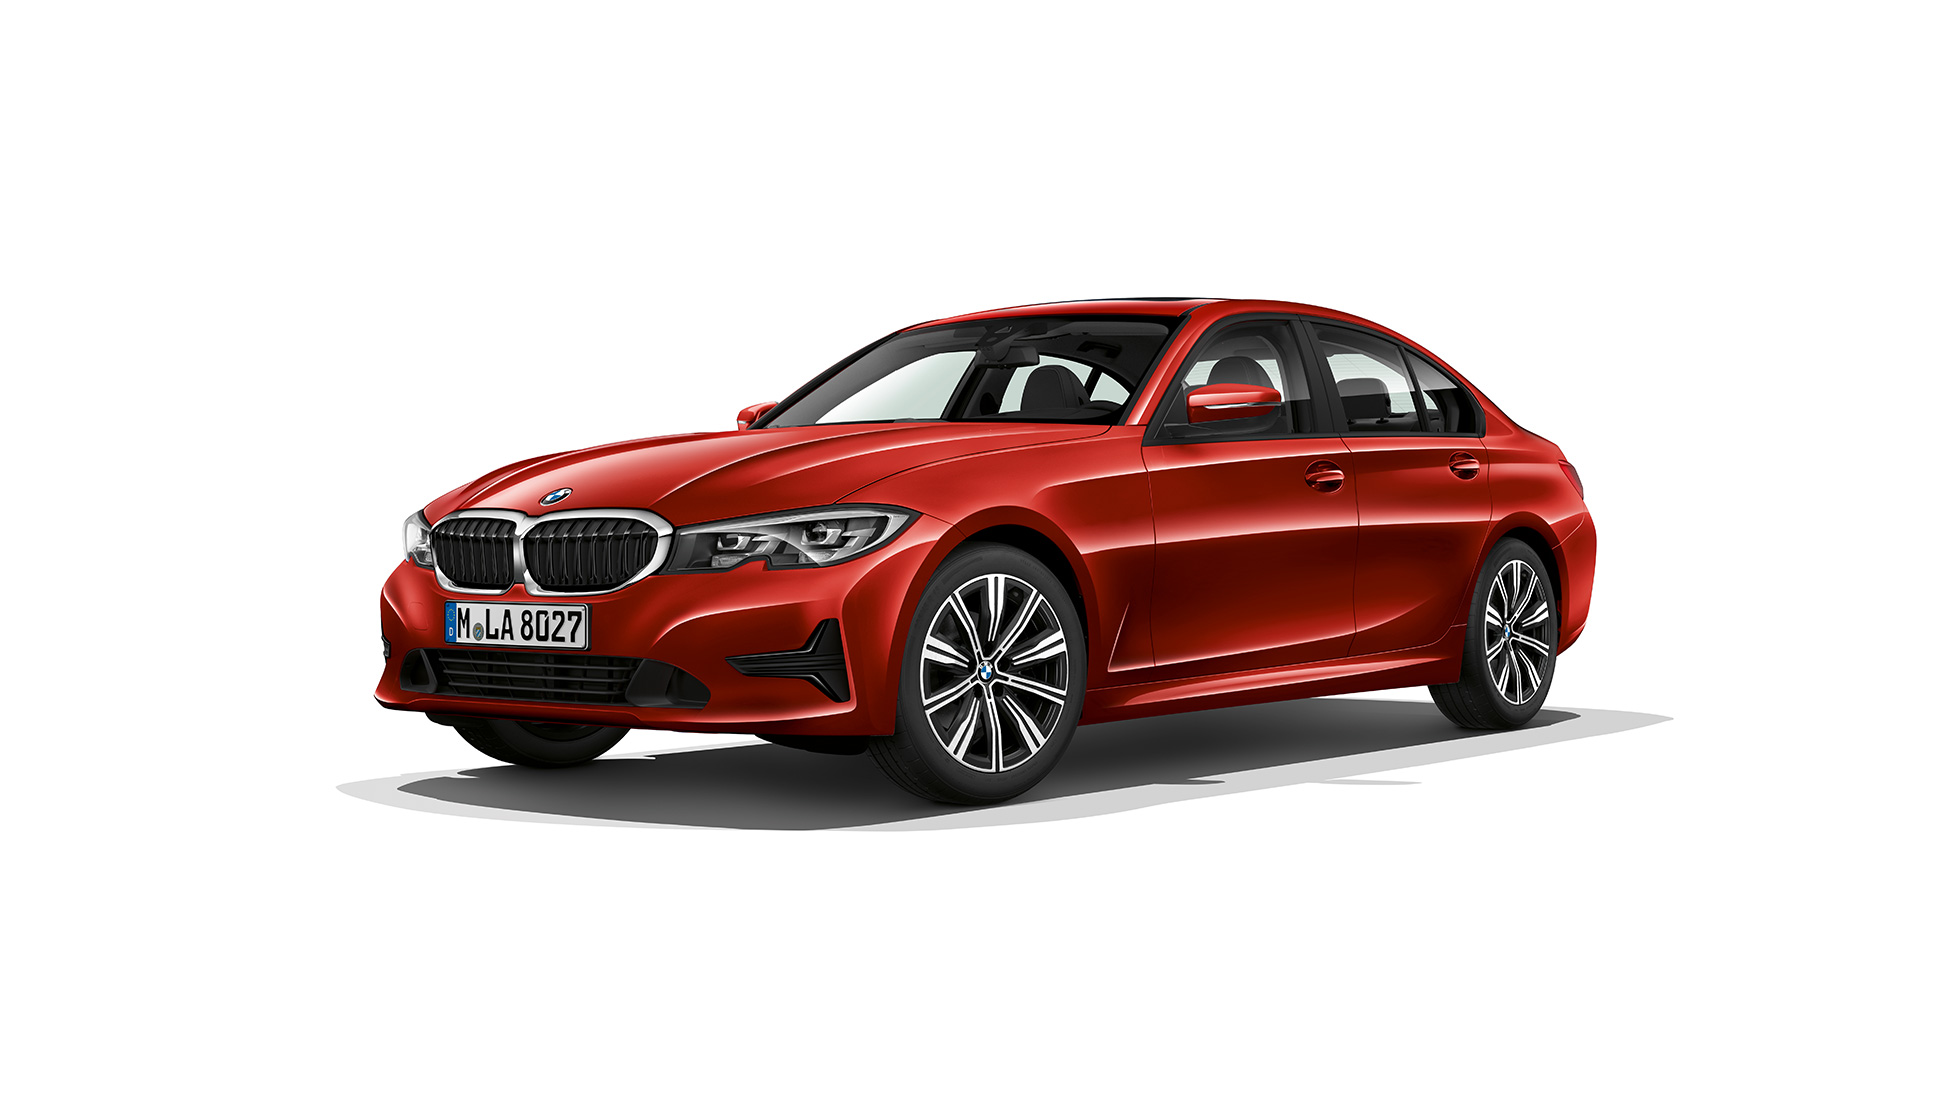 Bmw 3 Series Sedan And Gran Turismo New Cars 2019 Bmw South Africa